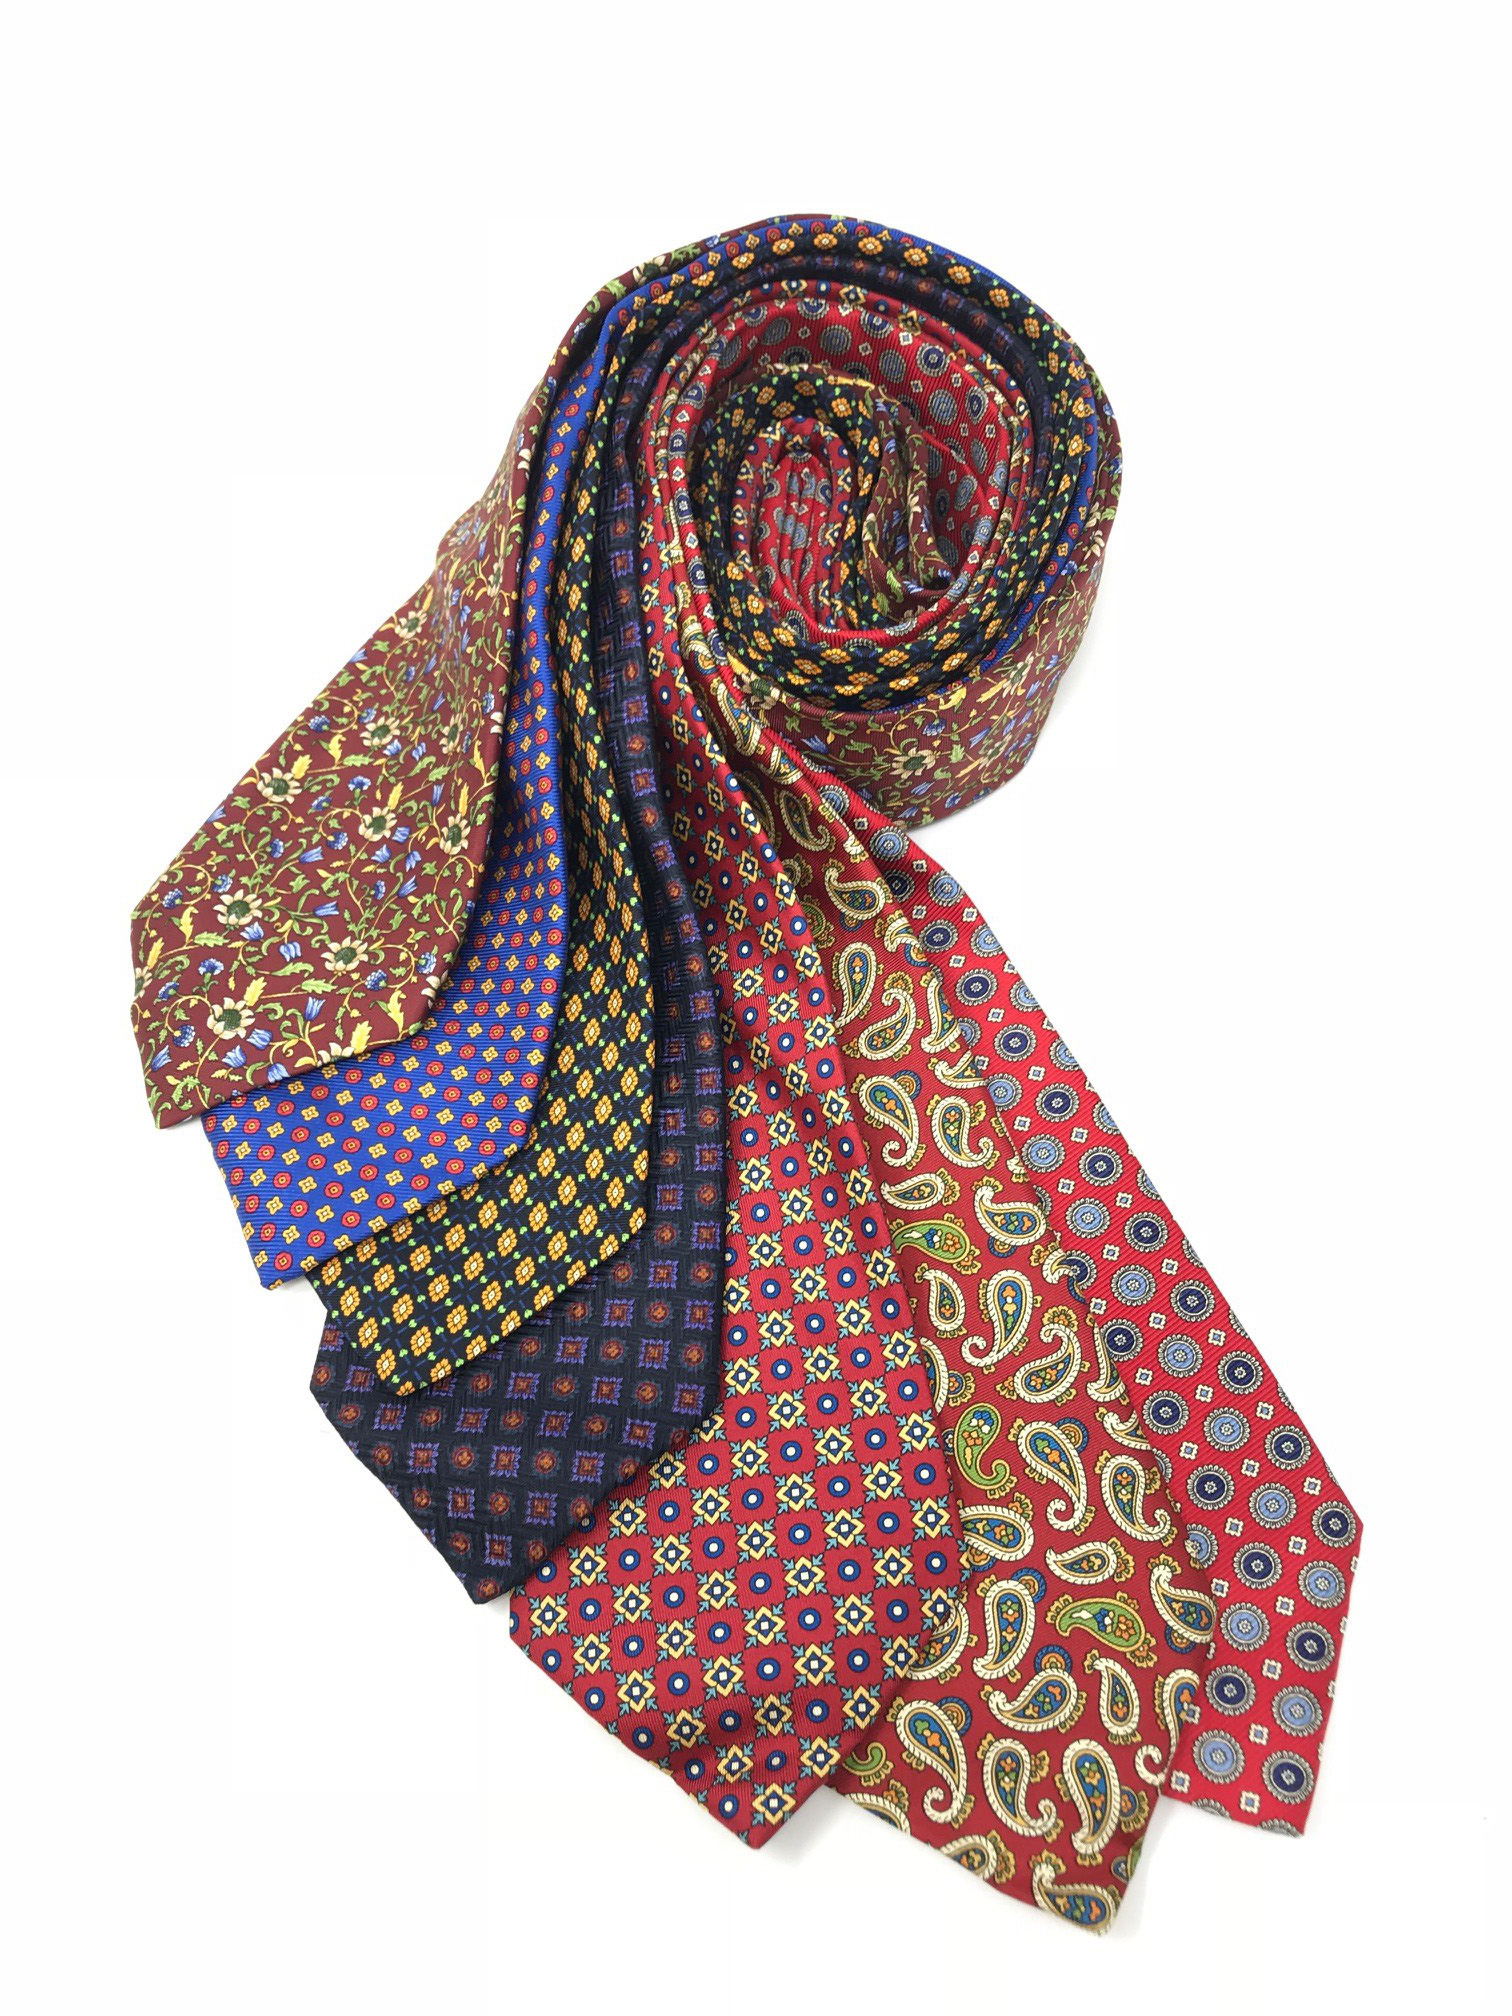 Cavenagh of London 7Piece 100% Pure Silk Ties Made in UK (327D)RRP£139.99